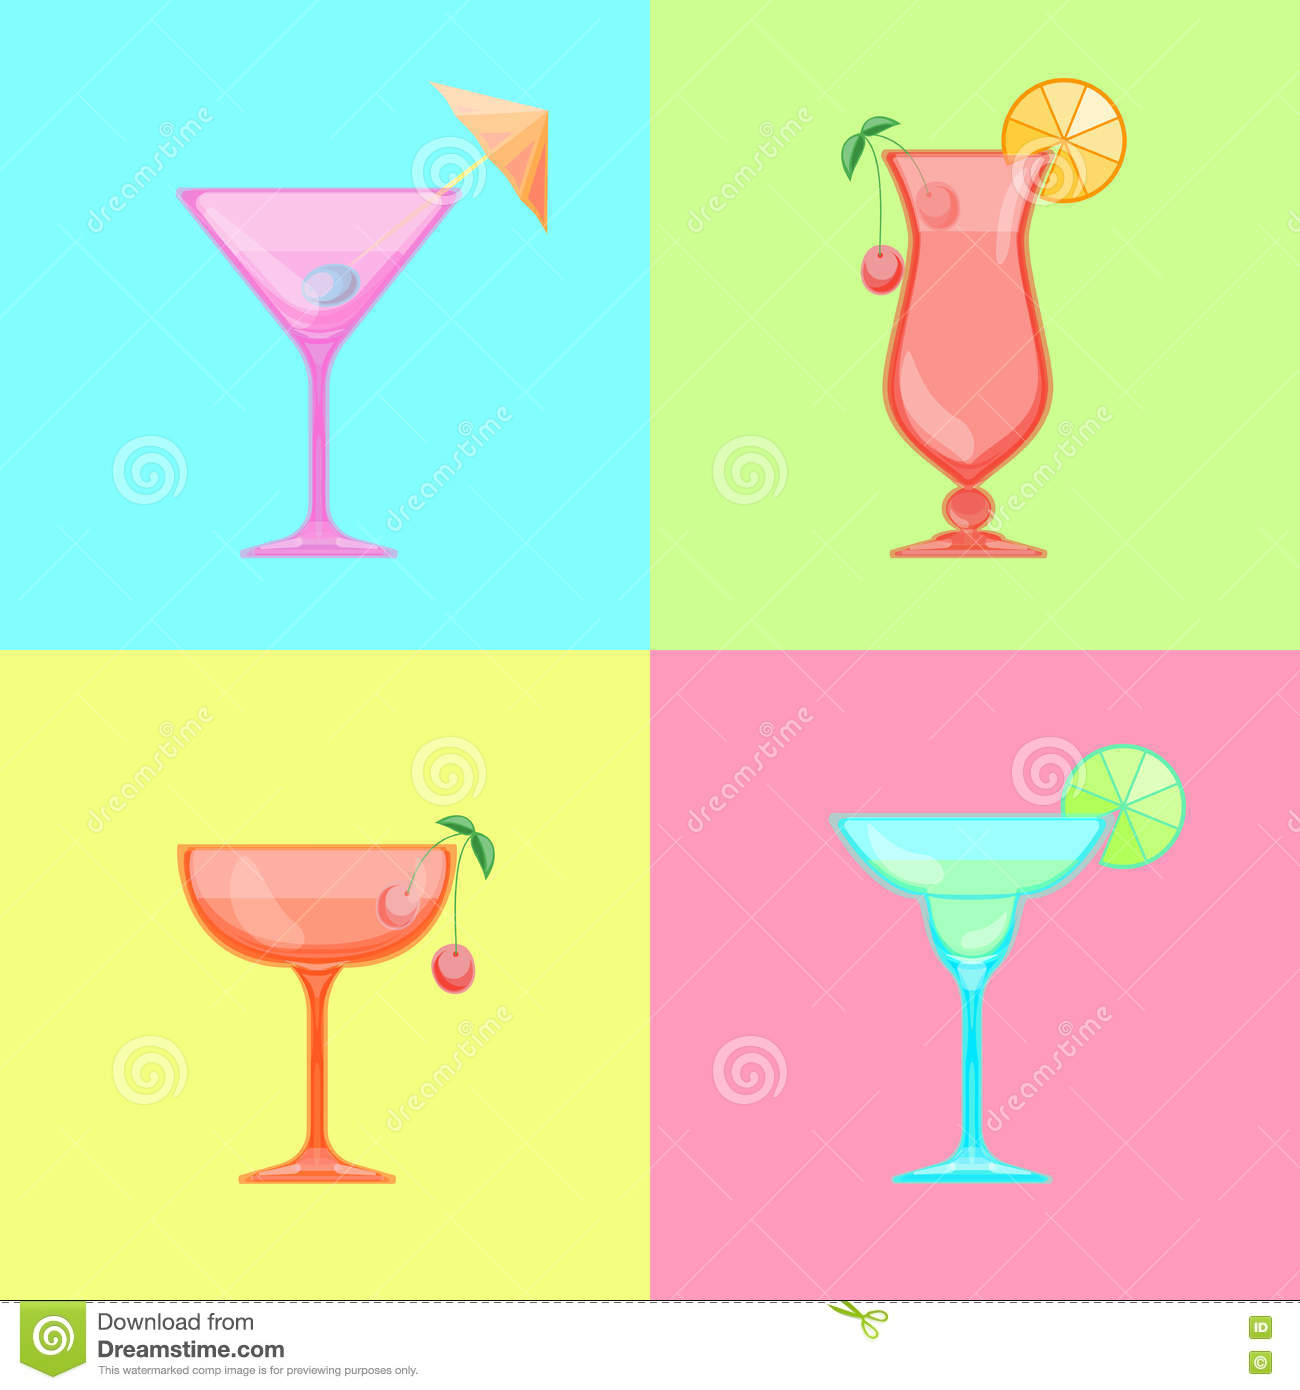 Martini Glass With Olive And Cocktail Umbrella Stock Illustration